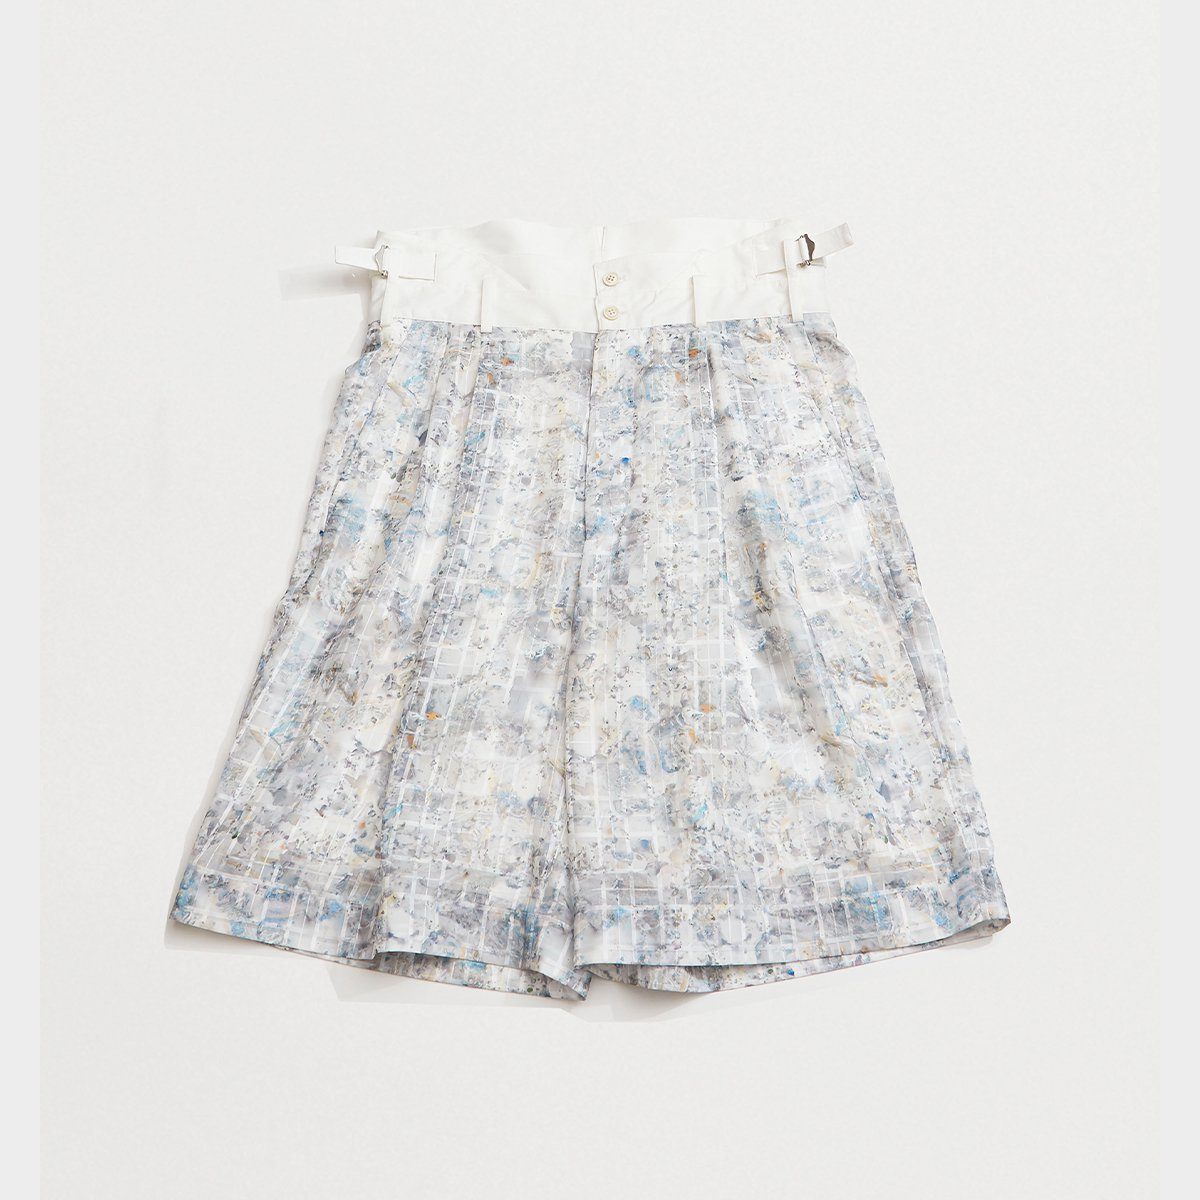 <img class='new_mark_img1' src='https://img.shop-pro.jp/img/new/icons5.gif' style='border:none;display:inline;margin:0px;padding:0px;width:auto;' />HIGH WAIST SHORTS / BLUE PRINT